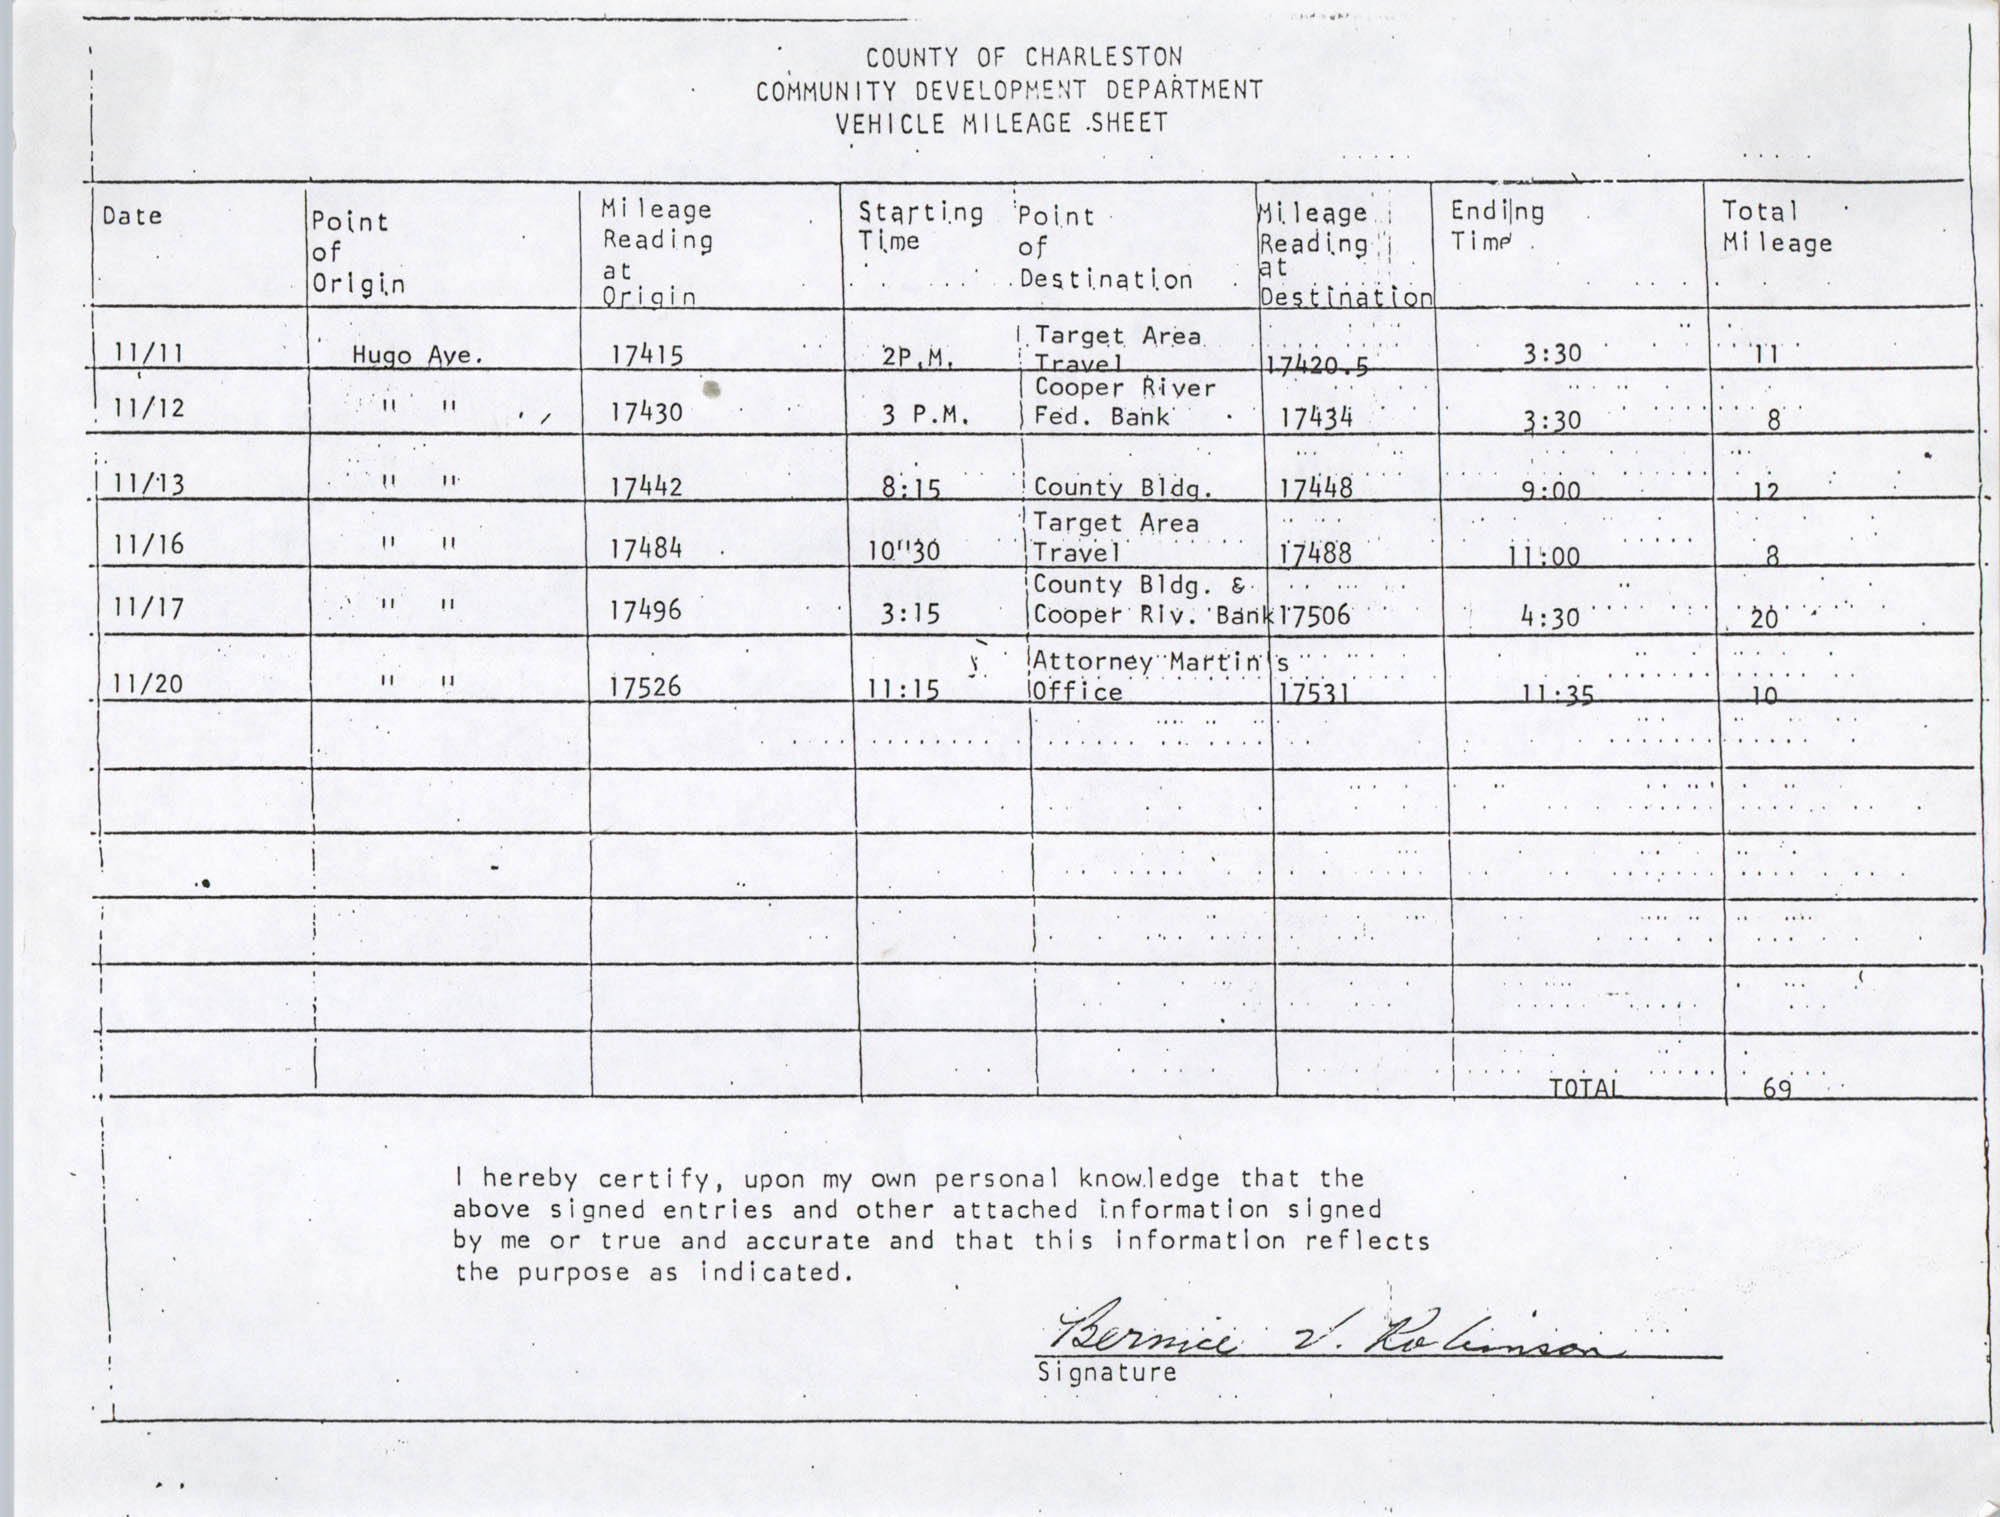 Community Development Department Vehicle Mileage Sheet, Page 10